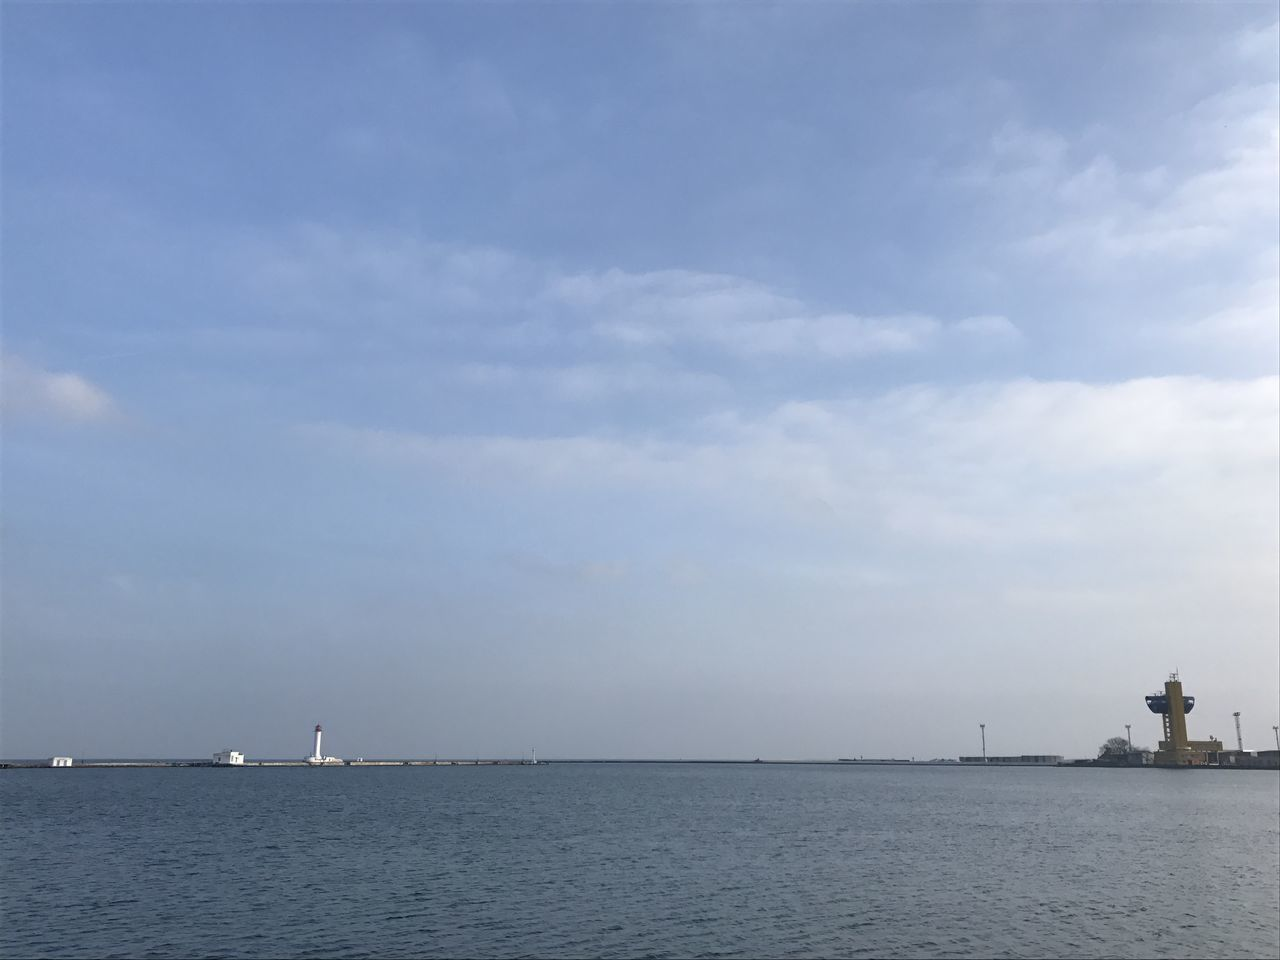 sea, sky, cloud - sky, scenics, waterfront, tranquility, water, beauty in nature, horizon over water, day, nature, outdoors, tranquil scene, no people, nautical vessel, sailing, architecture